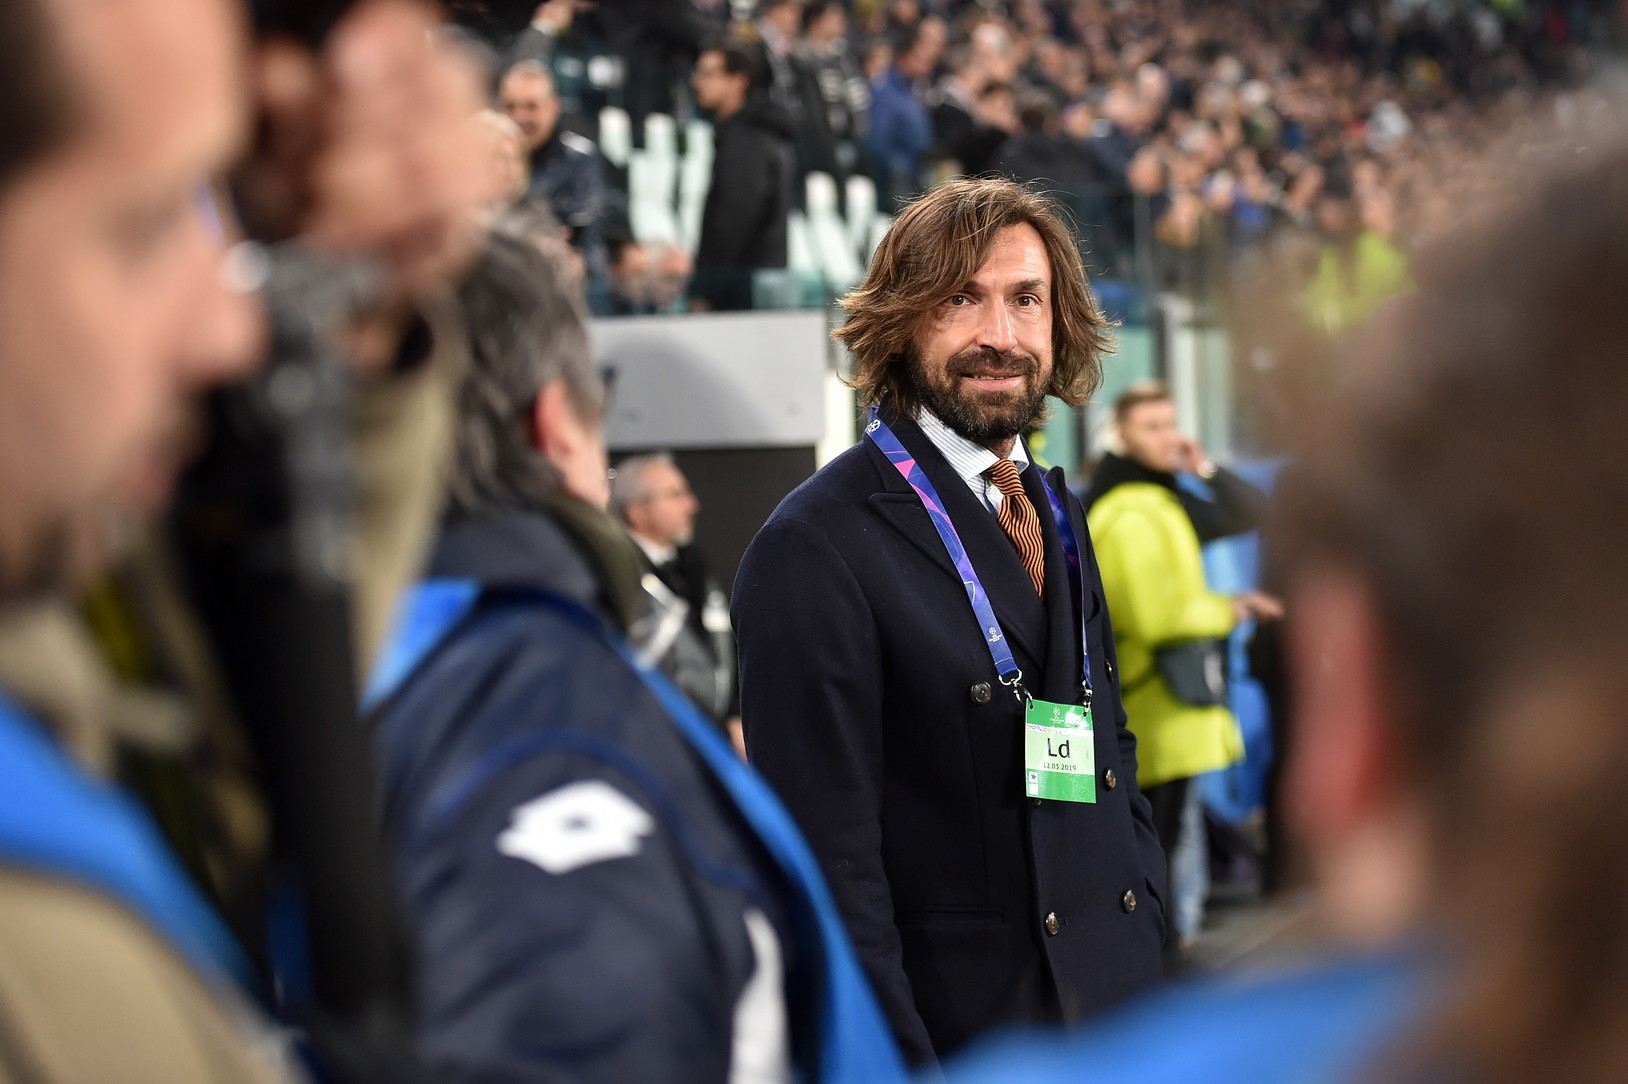 3) Andrea Pirlo: 8,3 milioni di follower